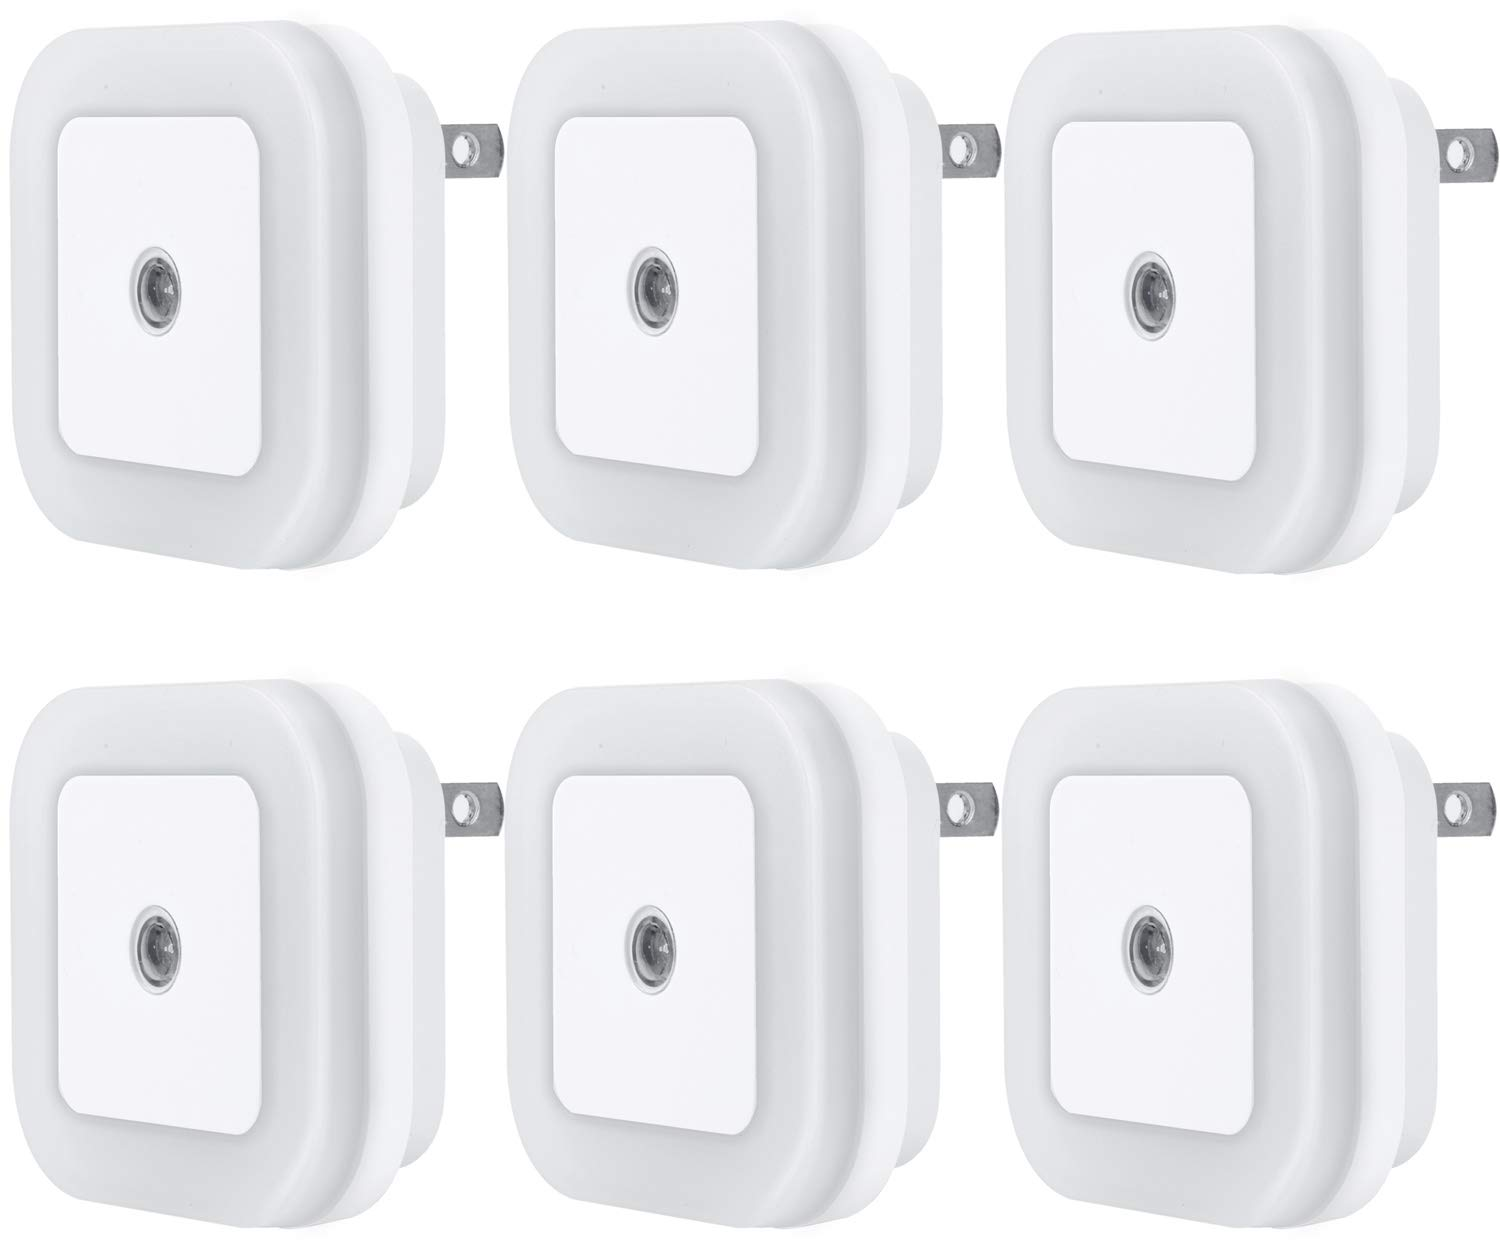 Uigos LED Night Light, 6-Pack